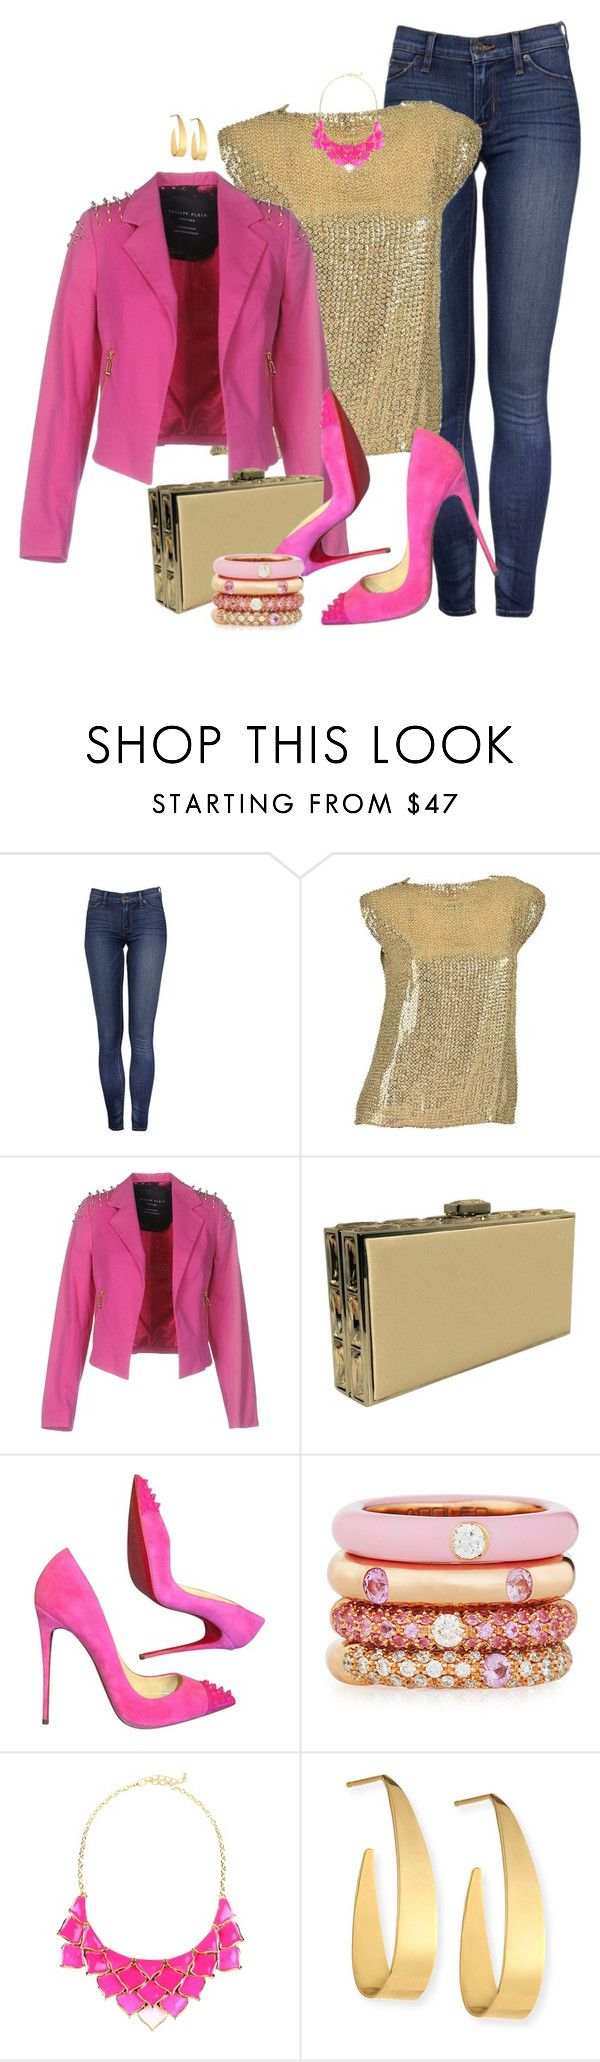 """PINK STUD by ShaunSlay"" by shaunslay ❤ liked on Polyvore featuring Pierre Balmain, Philipp Plein, Judith Leiber, Christian Louboutin, Adolfo Courrier, George J. Love and Lana"